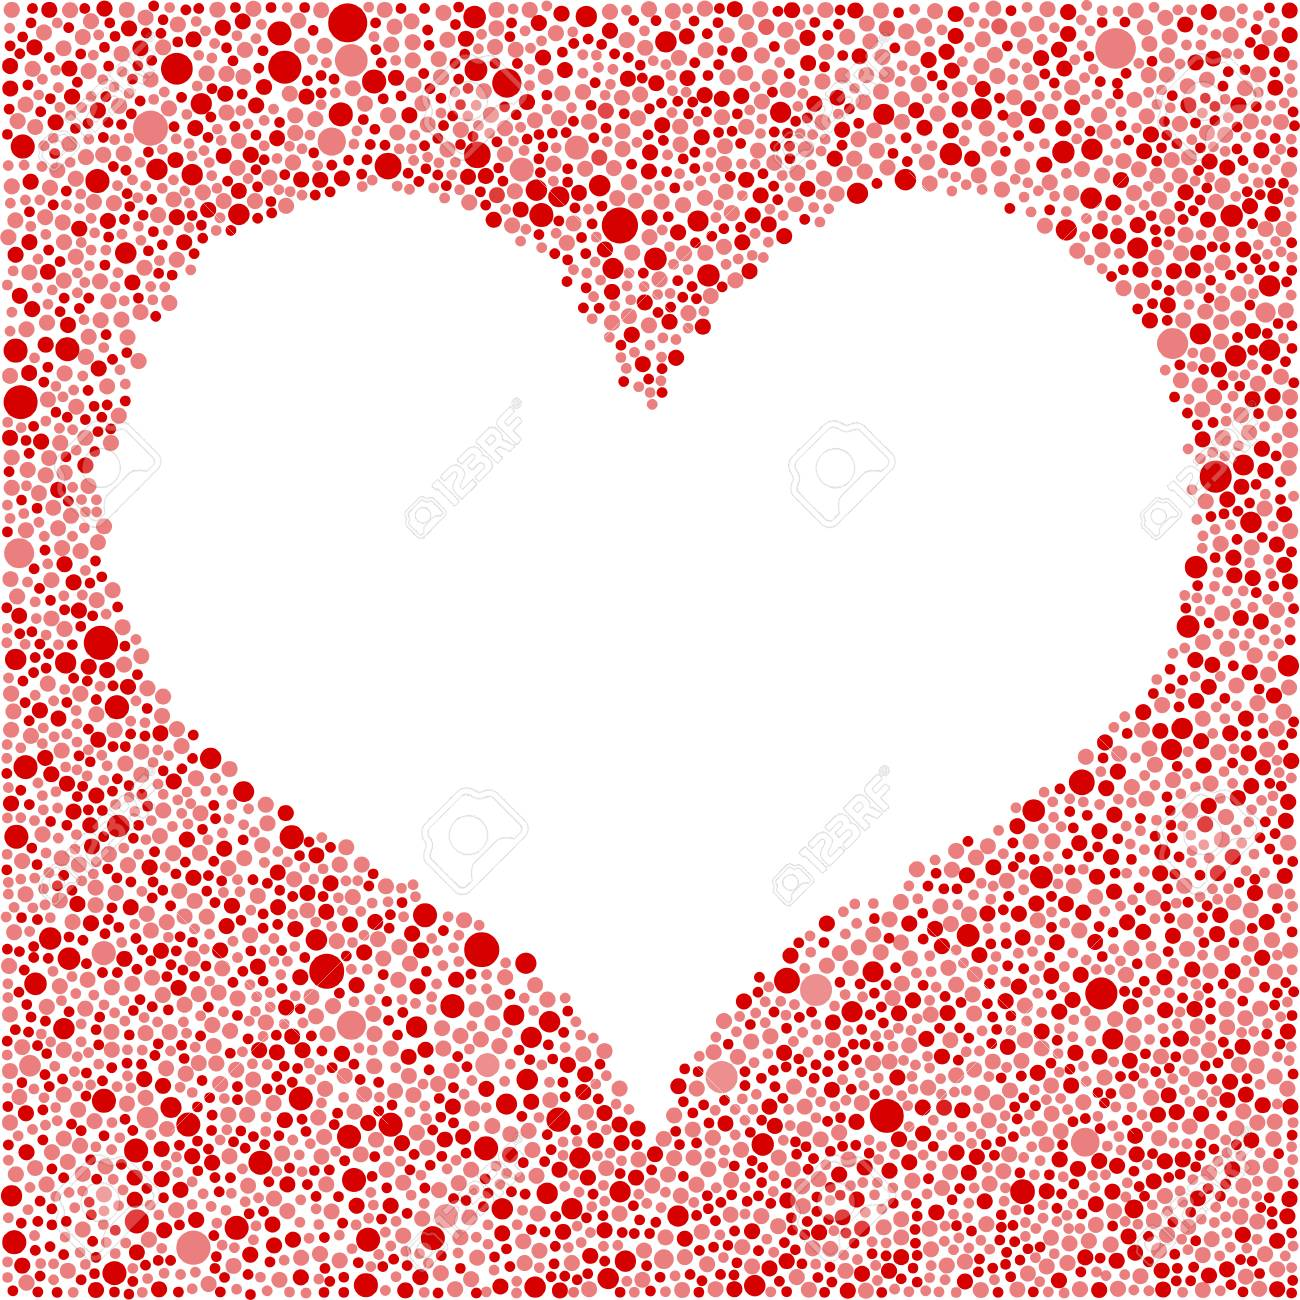 Abstract With Red Bubbles Circle Heart Frame On White Background ...